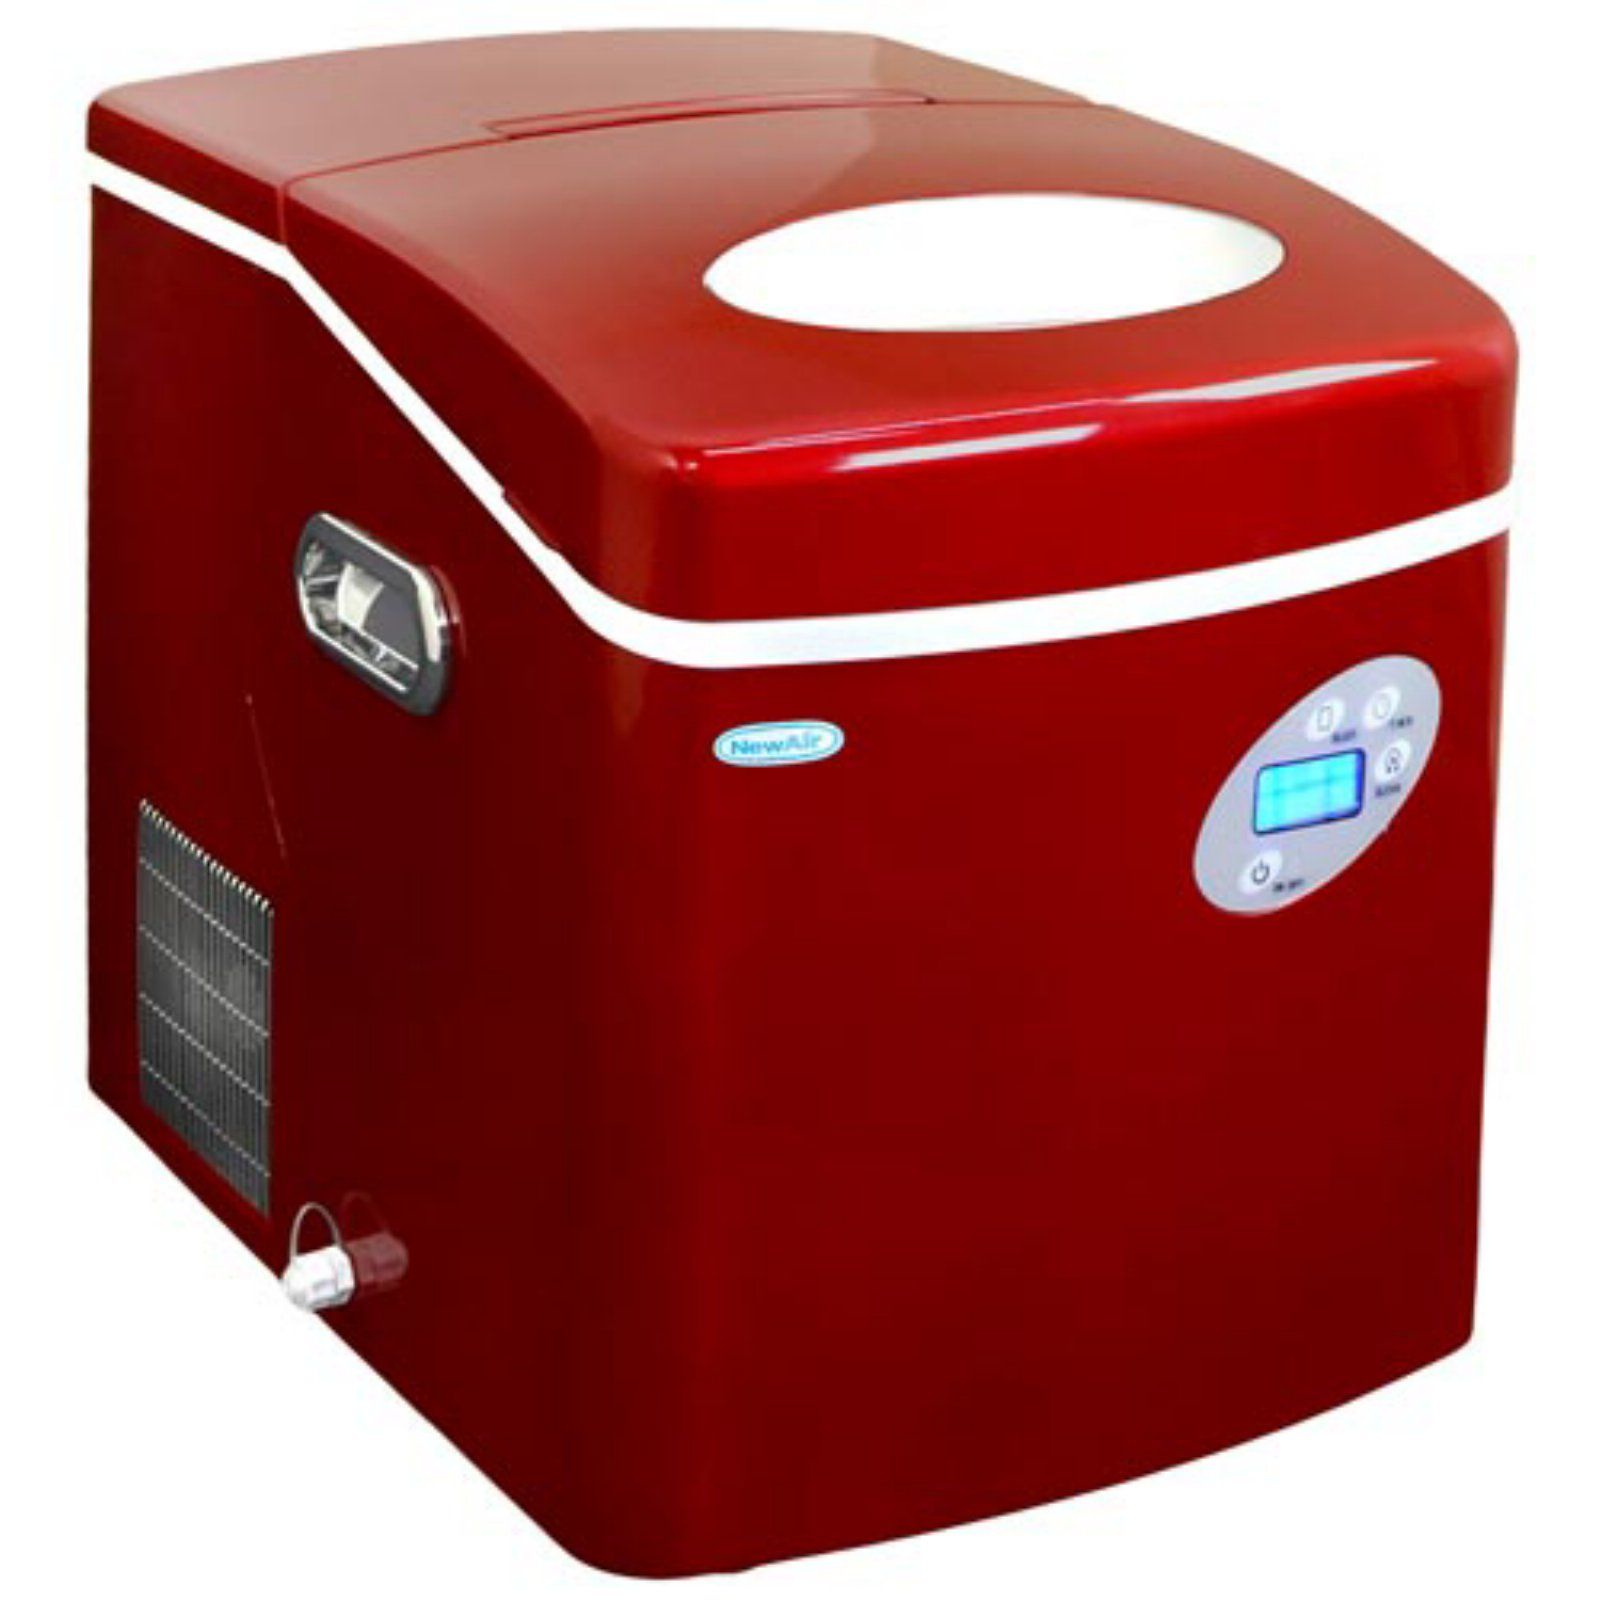 Newair Ai 215r Portable Ice Maker Kitchenaid Ice Maker Nugget